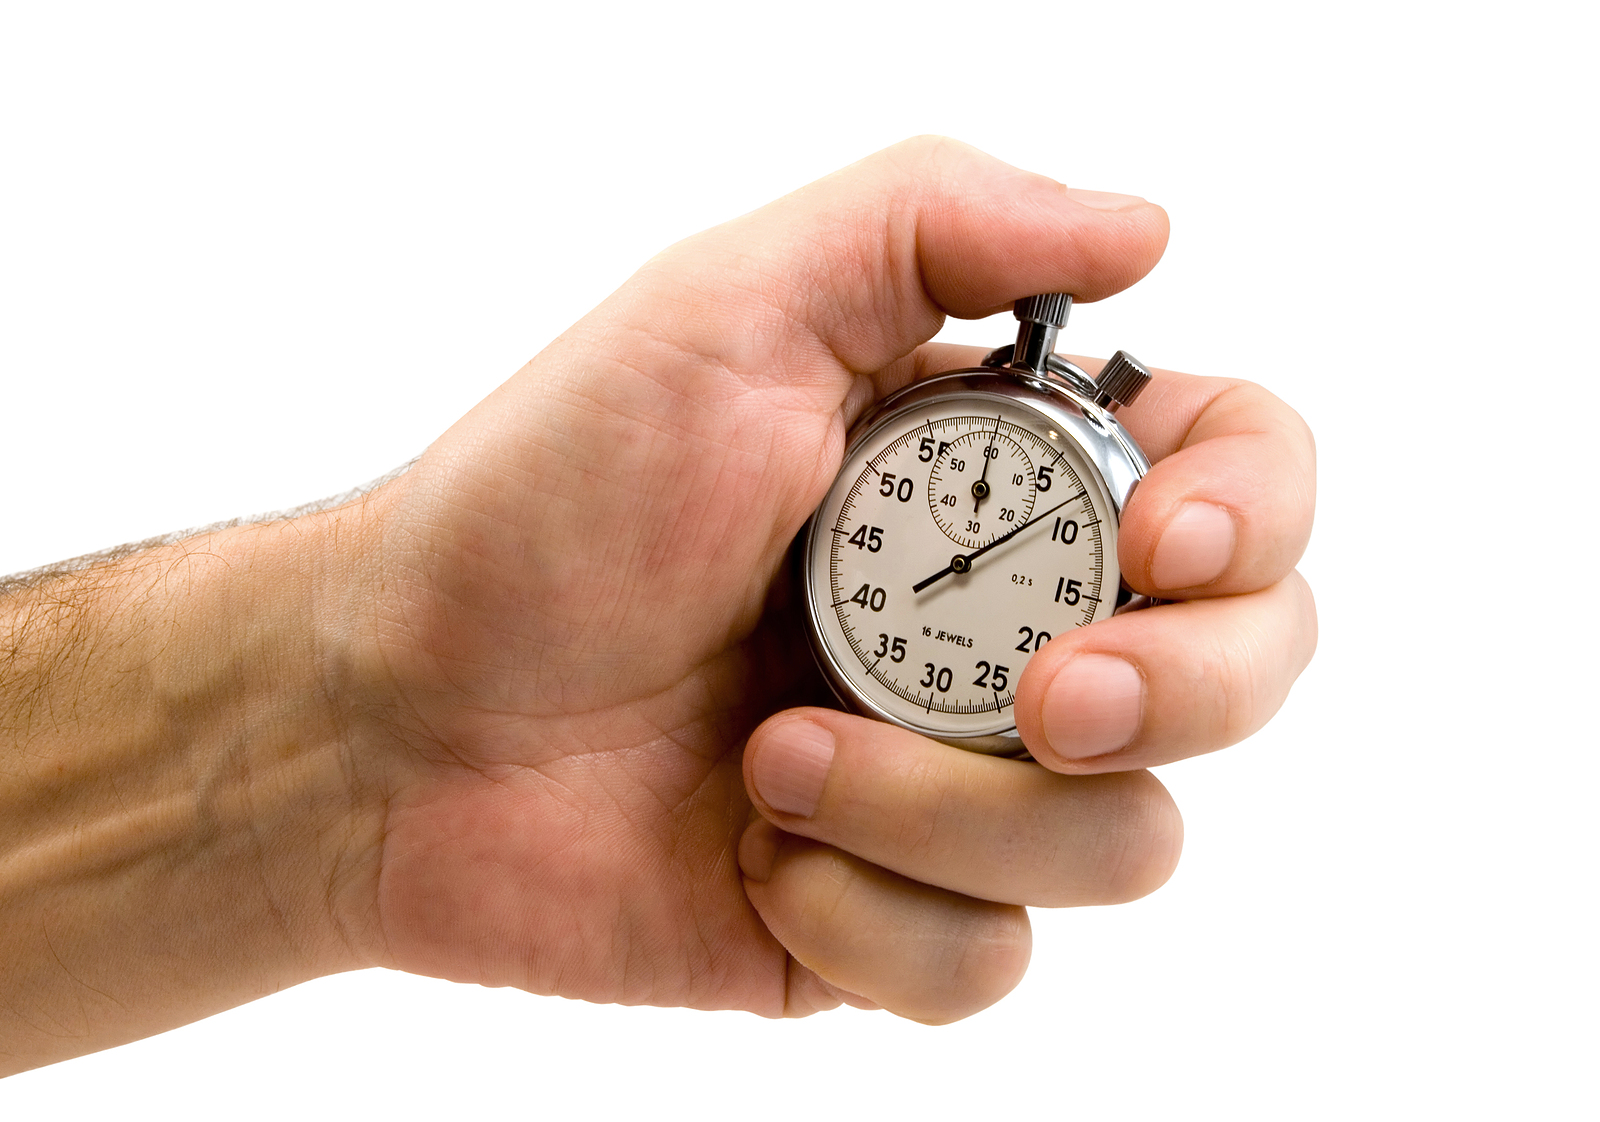 Hand starts stop watch to measure response time